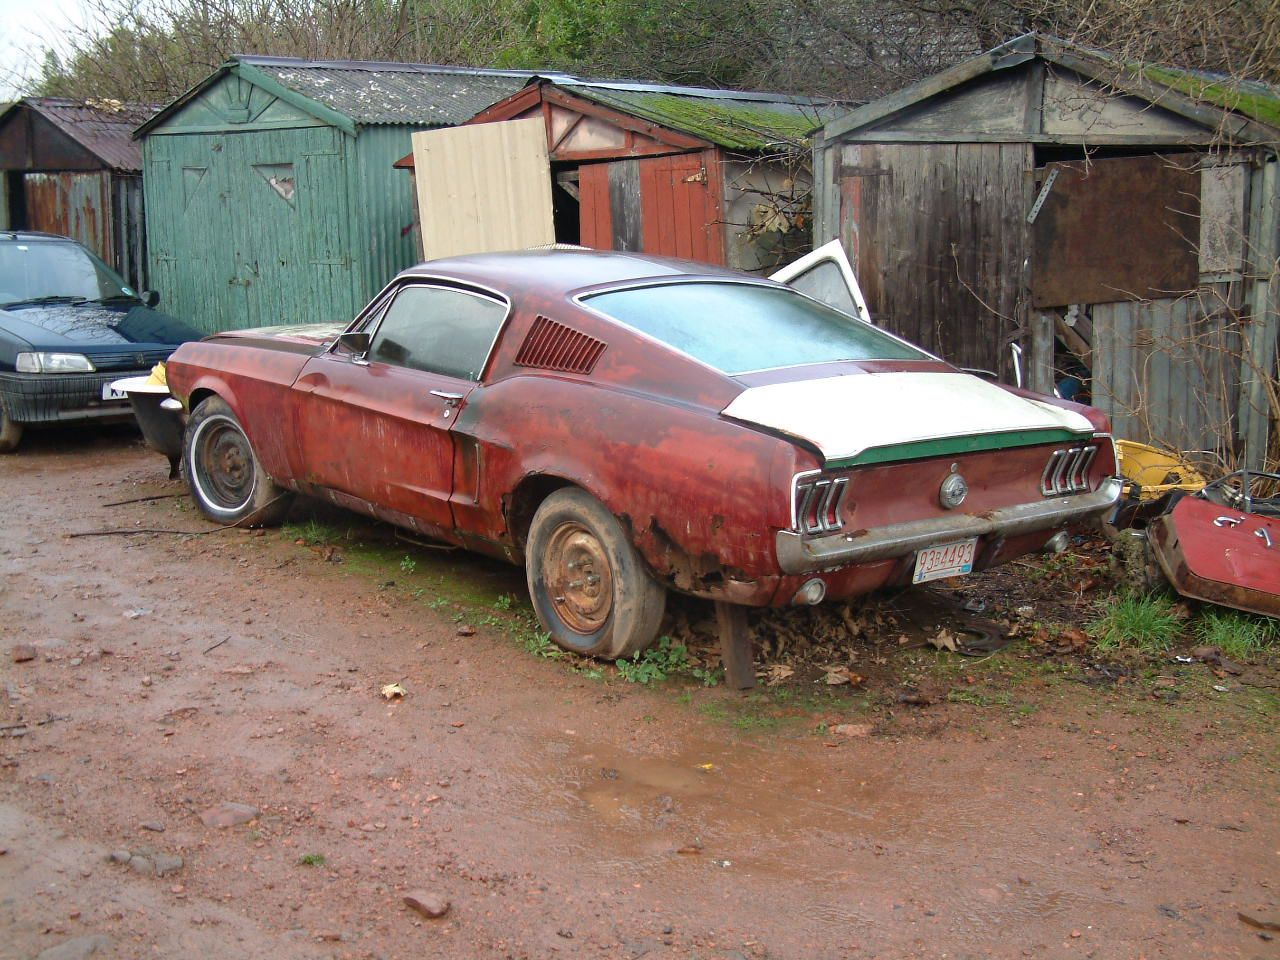 39 68 mustang f b rusted americana mustang cars rusty. Black Bedroom Furniture Sets. Home Design Ideas